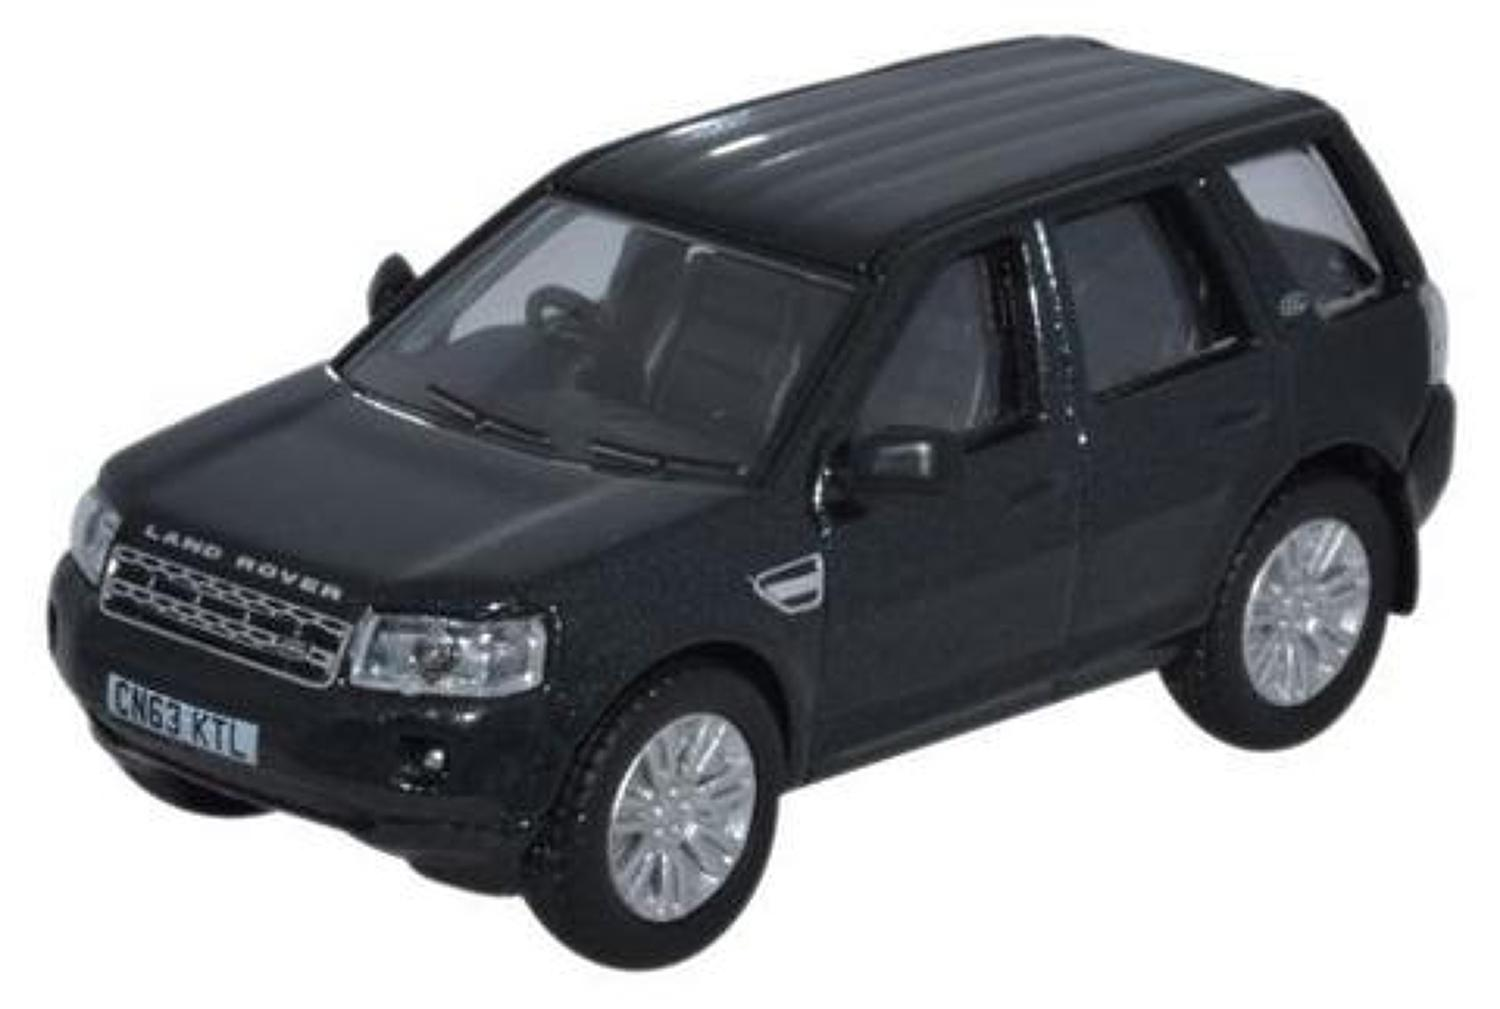 Land Rover Freelander Black